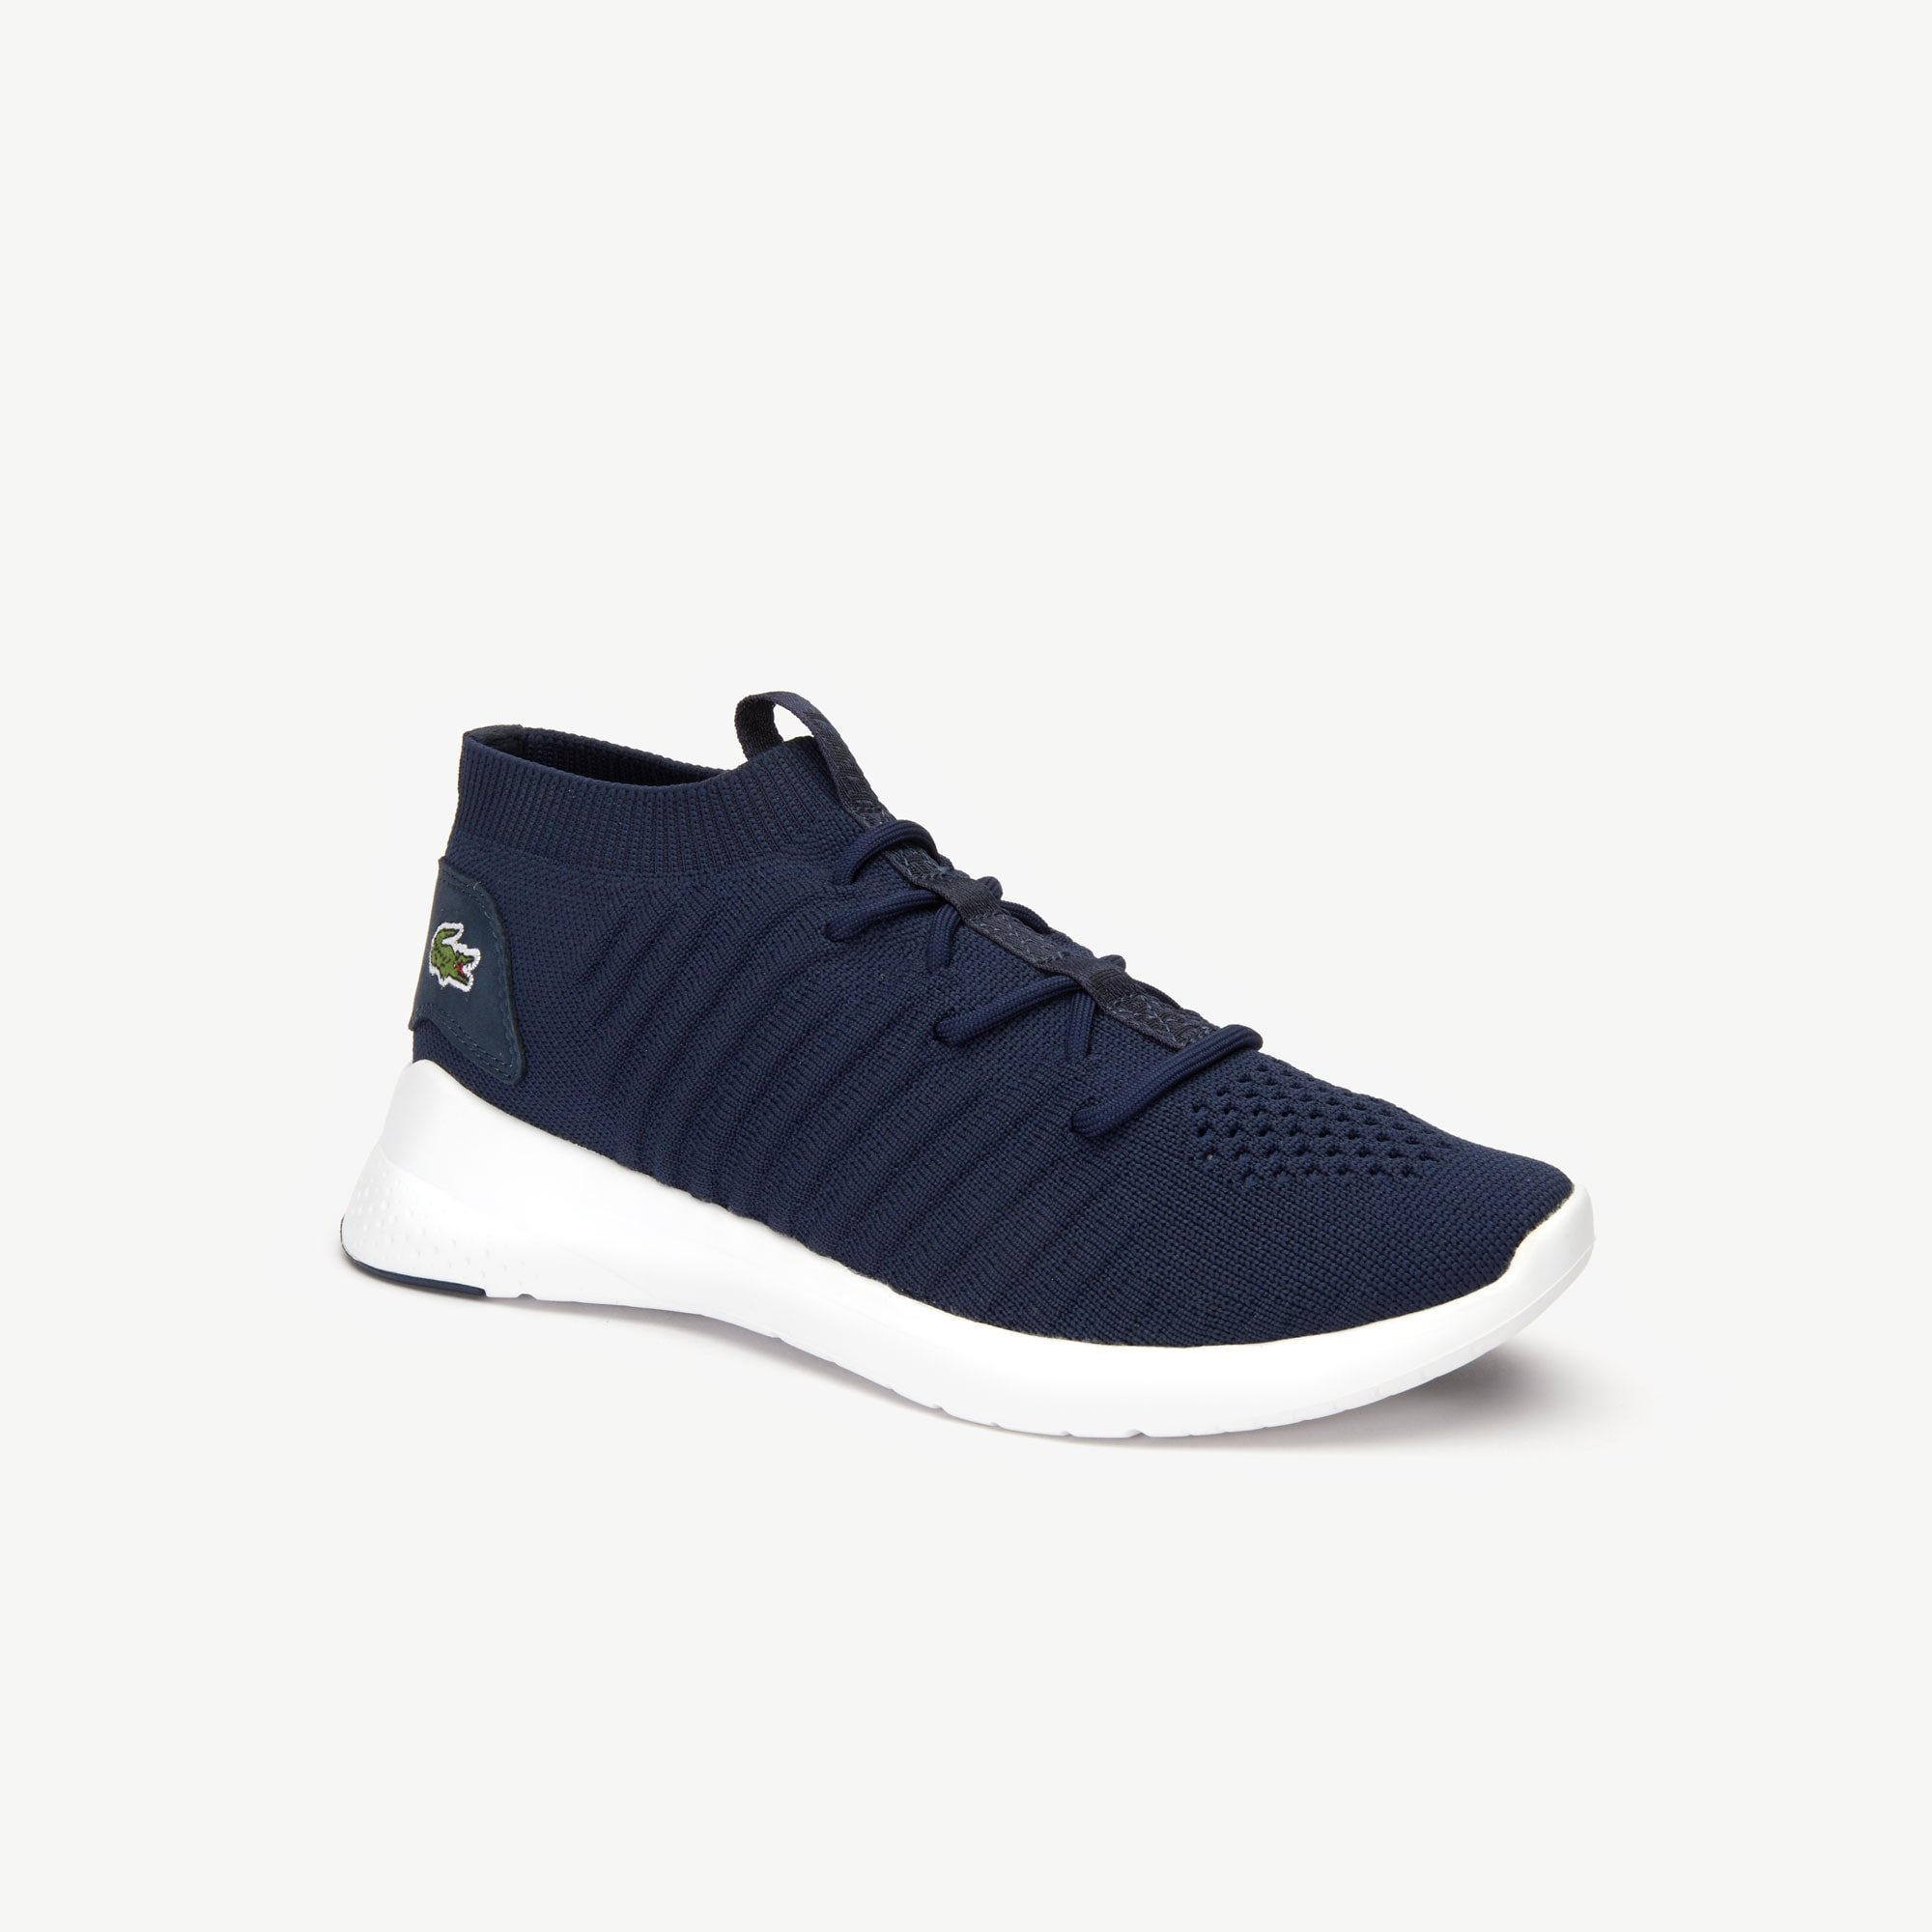 FemmeCollection Chaussures Lacoste Chaussures FemmeCollection Chaussures Lacoste FemmeCollection Lacoste Lacoste Chaussures FemmeCollection FemmeCollection Chaussures FJl1KTc